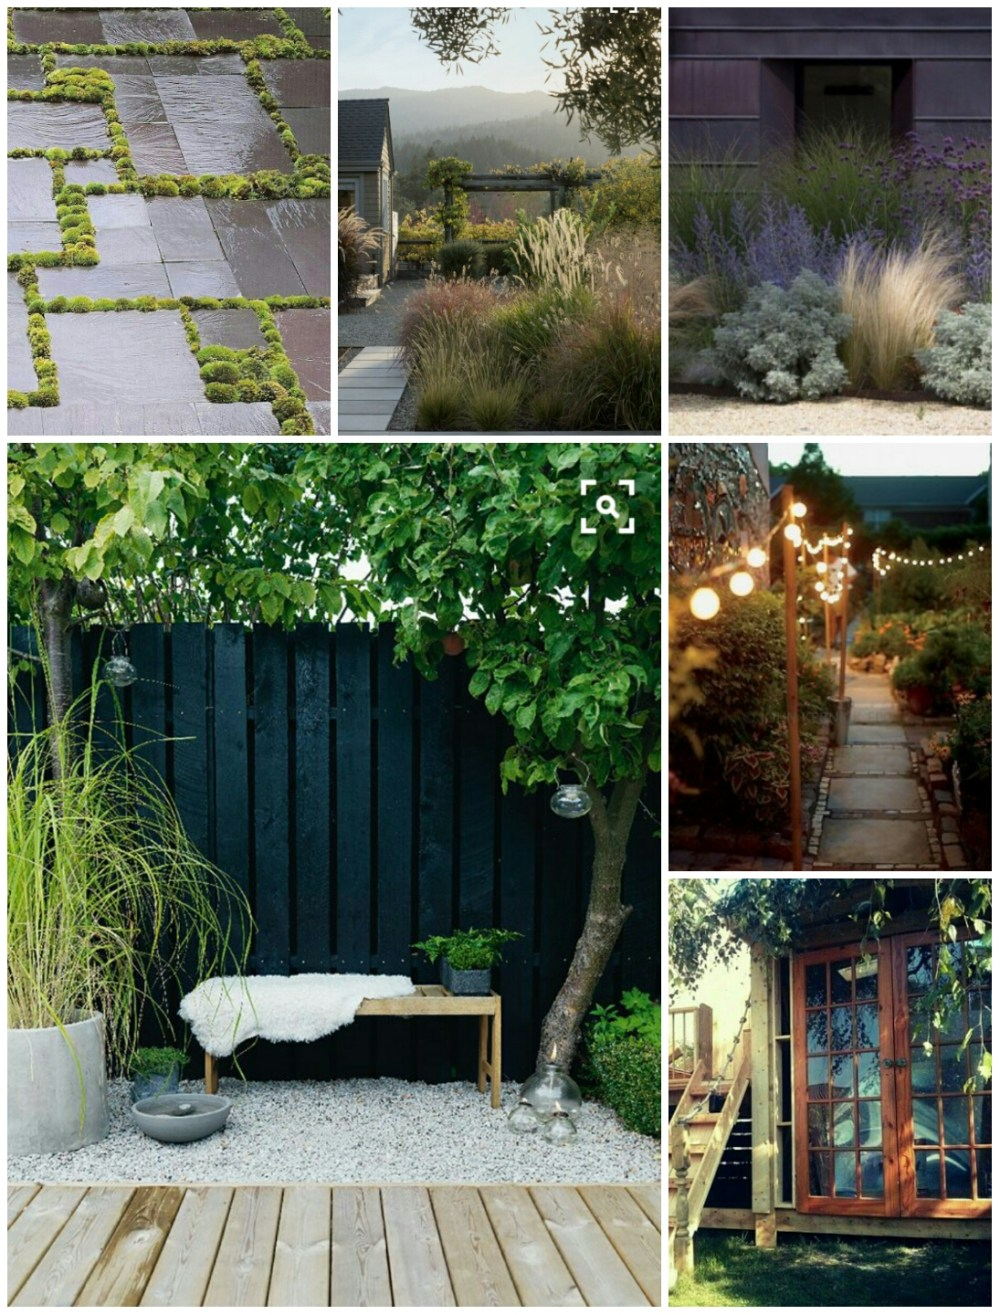 Garden design, a contemporary Scandi inspired makeover. Alice in Scandiland